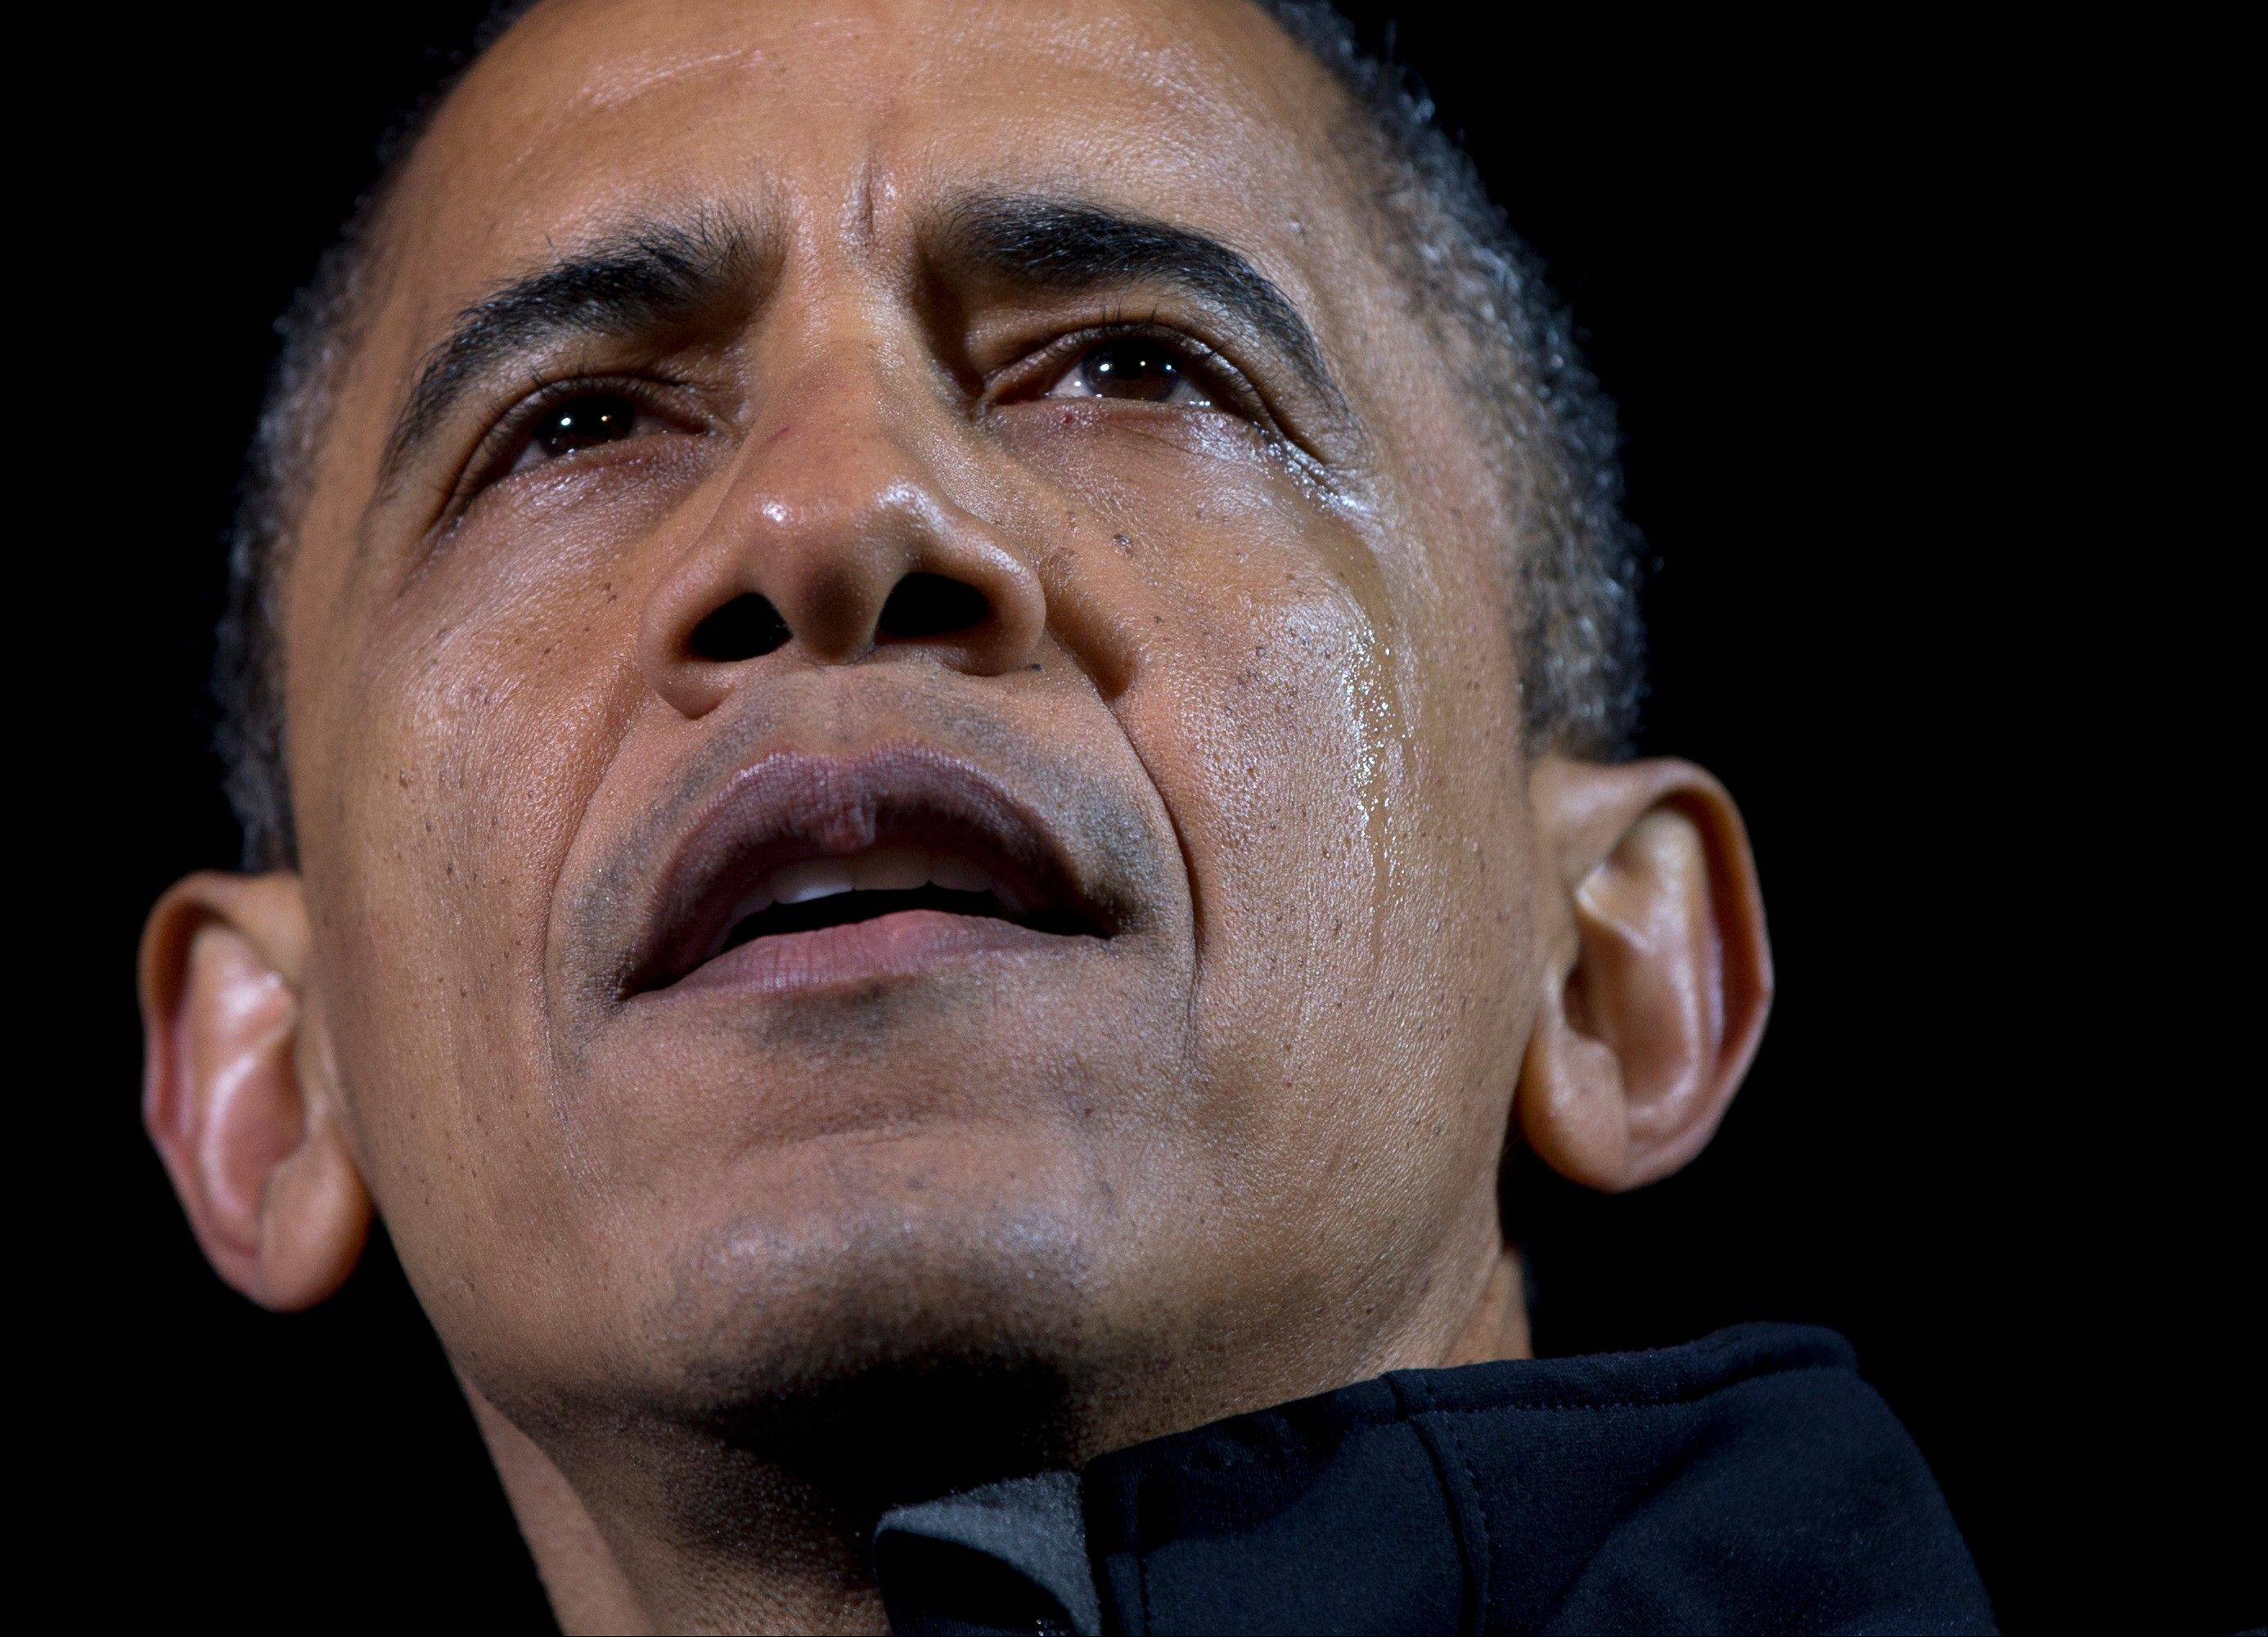 Tears run down the cheek of President Barack Obama as he speaks at his final campaign stop on the evening before the 2012 election, in the downtown Des Moines, Iowa. Barack Obama isn�t the only world leader unashamed or unable to avoid being seen crying in public.